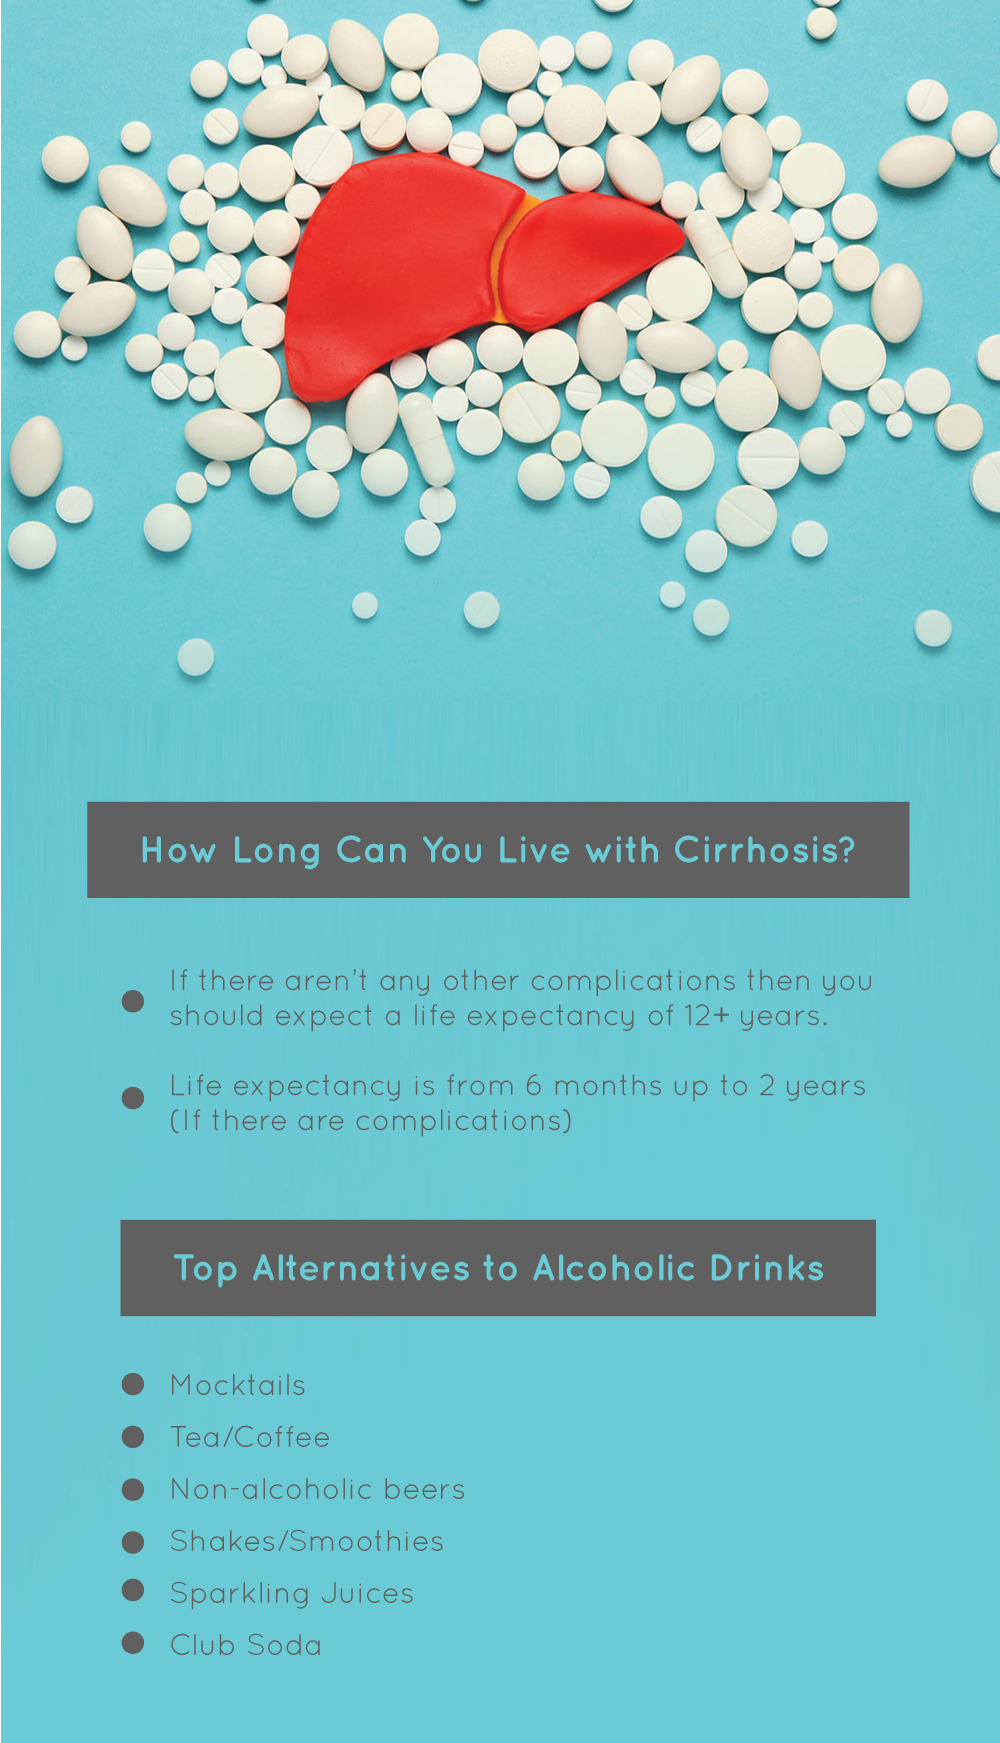 How Long Can You Live with Cirrhosis